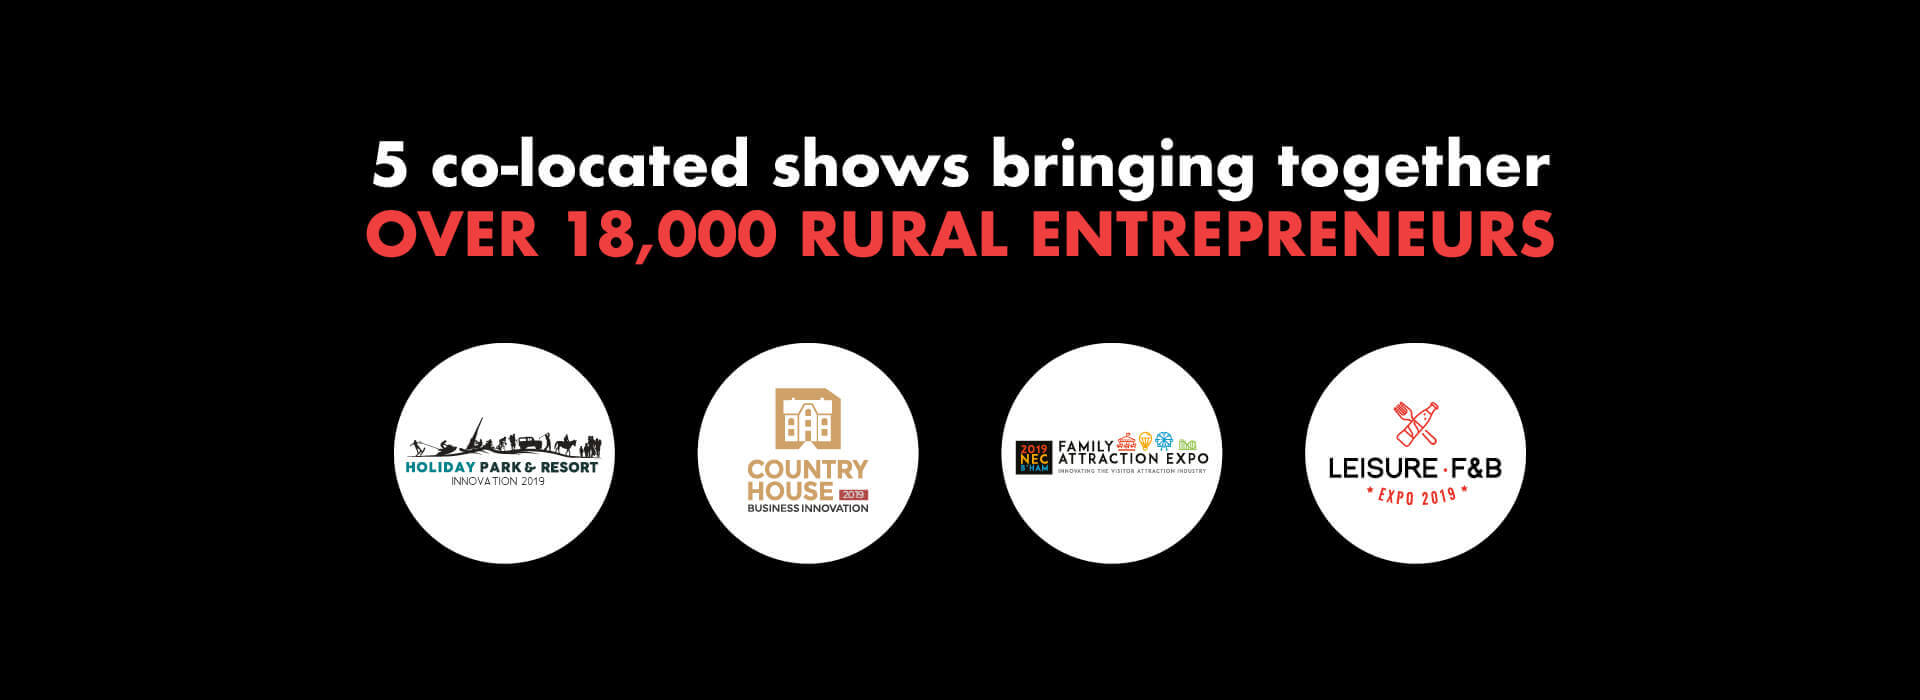 The Farm Business Innovation Show attended by over 18,000 rural entrepreneurs!